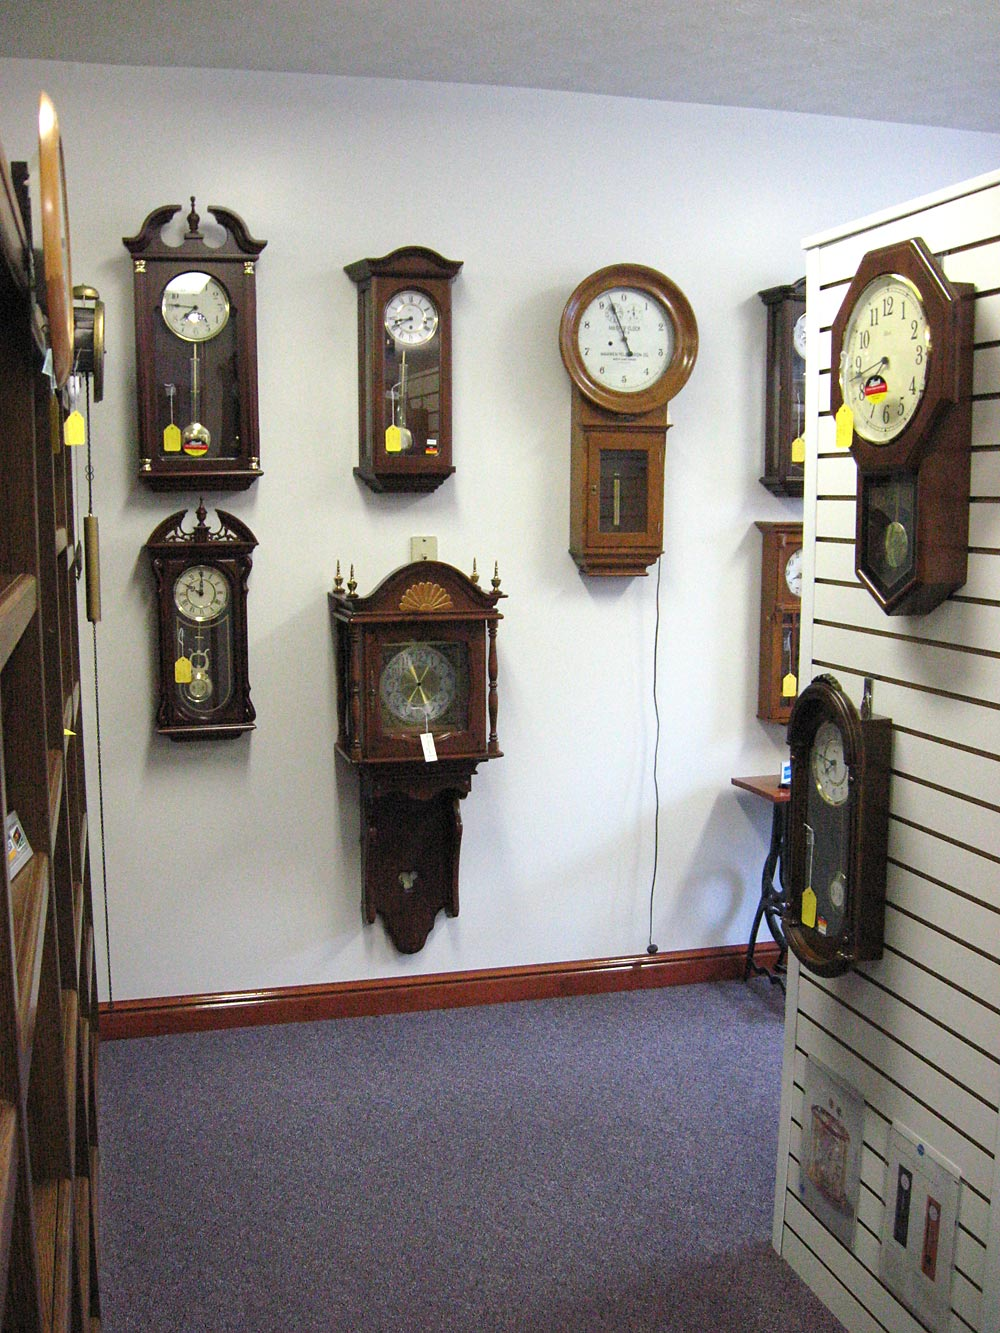 About bills clockworks of flora indiana hermle wall clocks amipublicfo Images